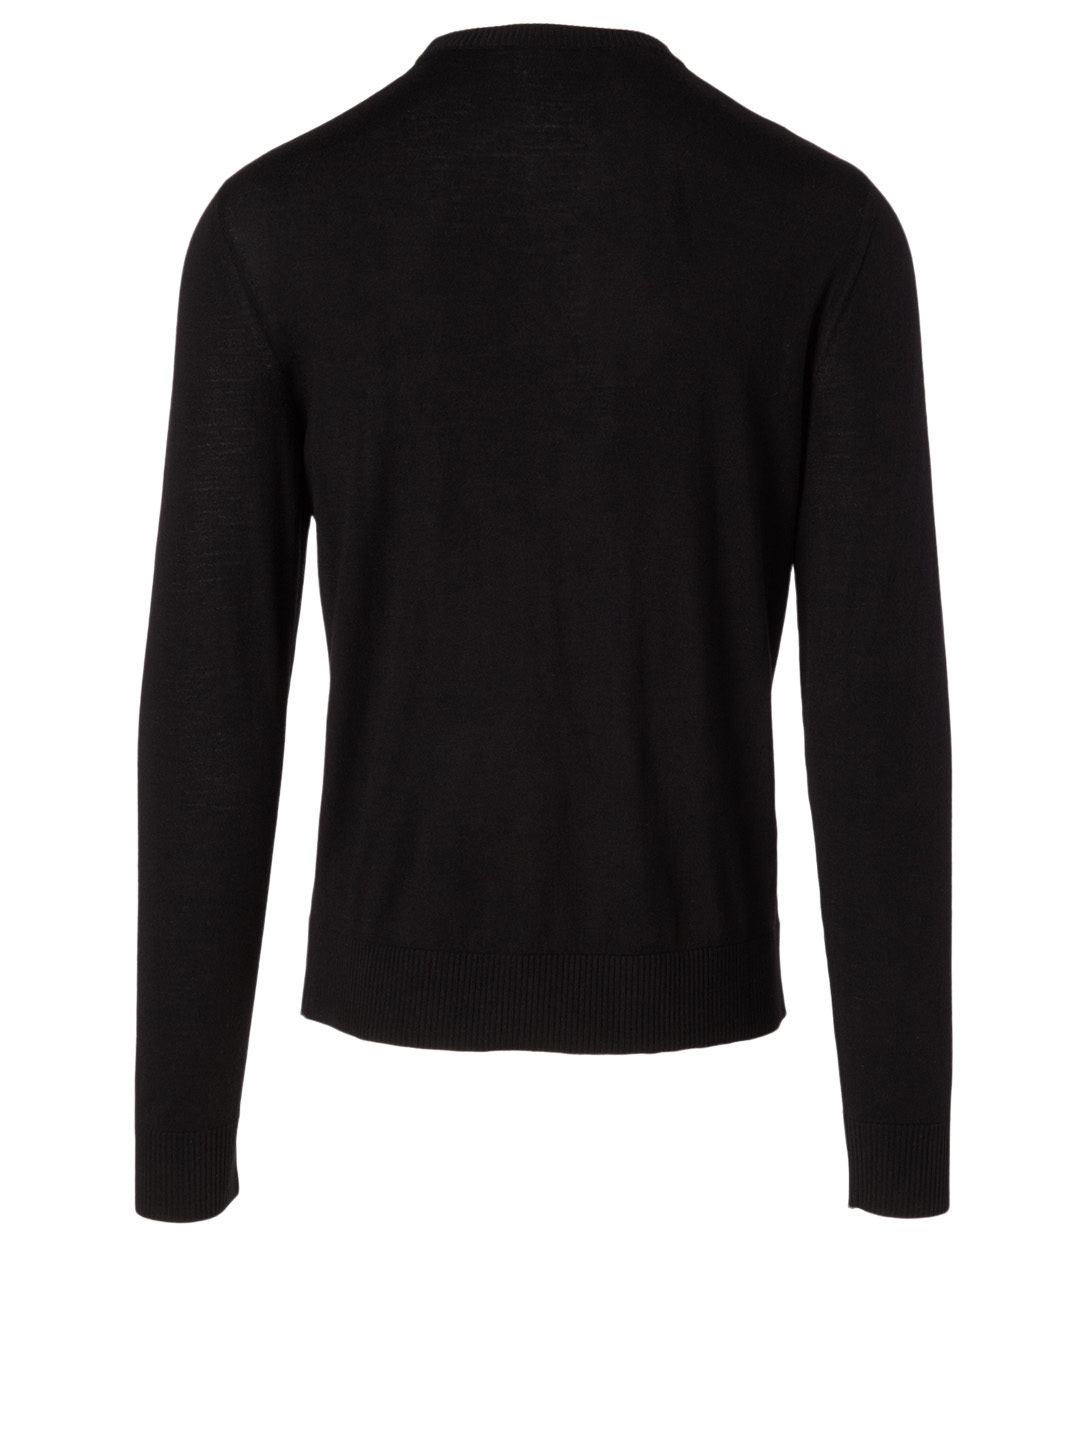 GIVENCHY Wool Logo Sweater With Address Men's Black